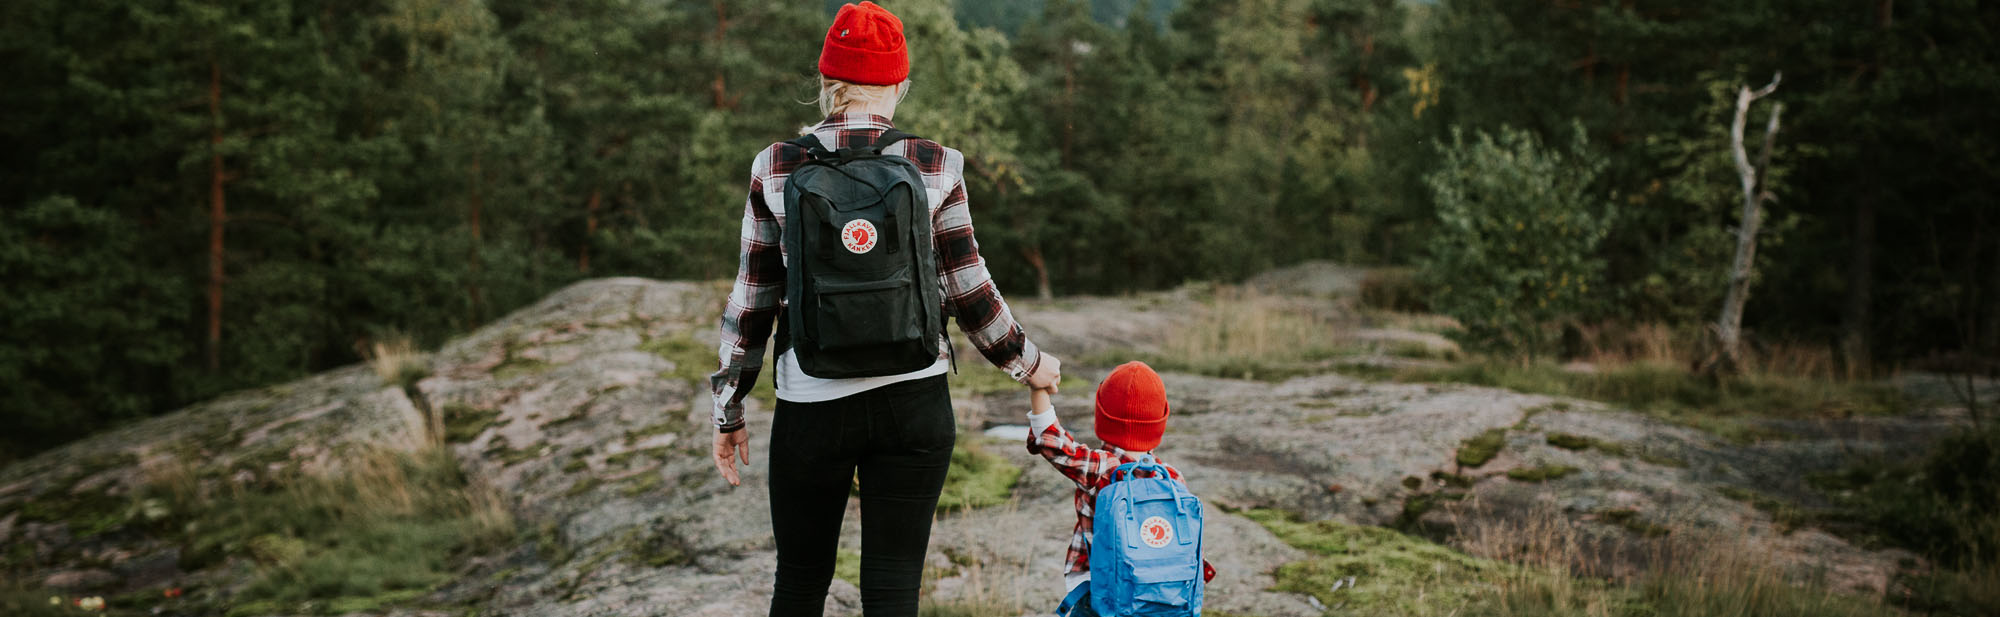 Mother and child walking hand in hand in a forest